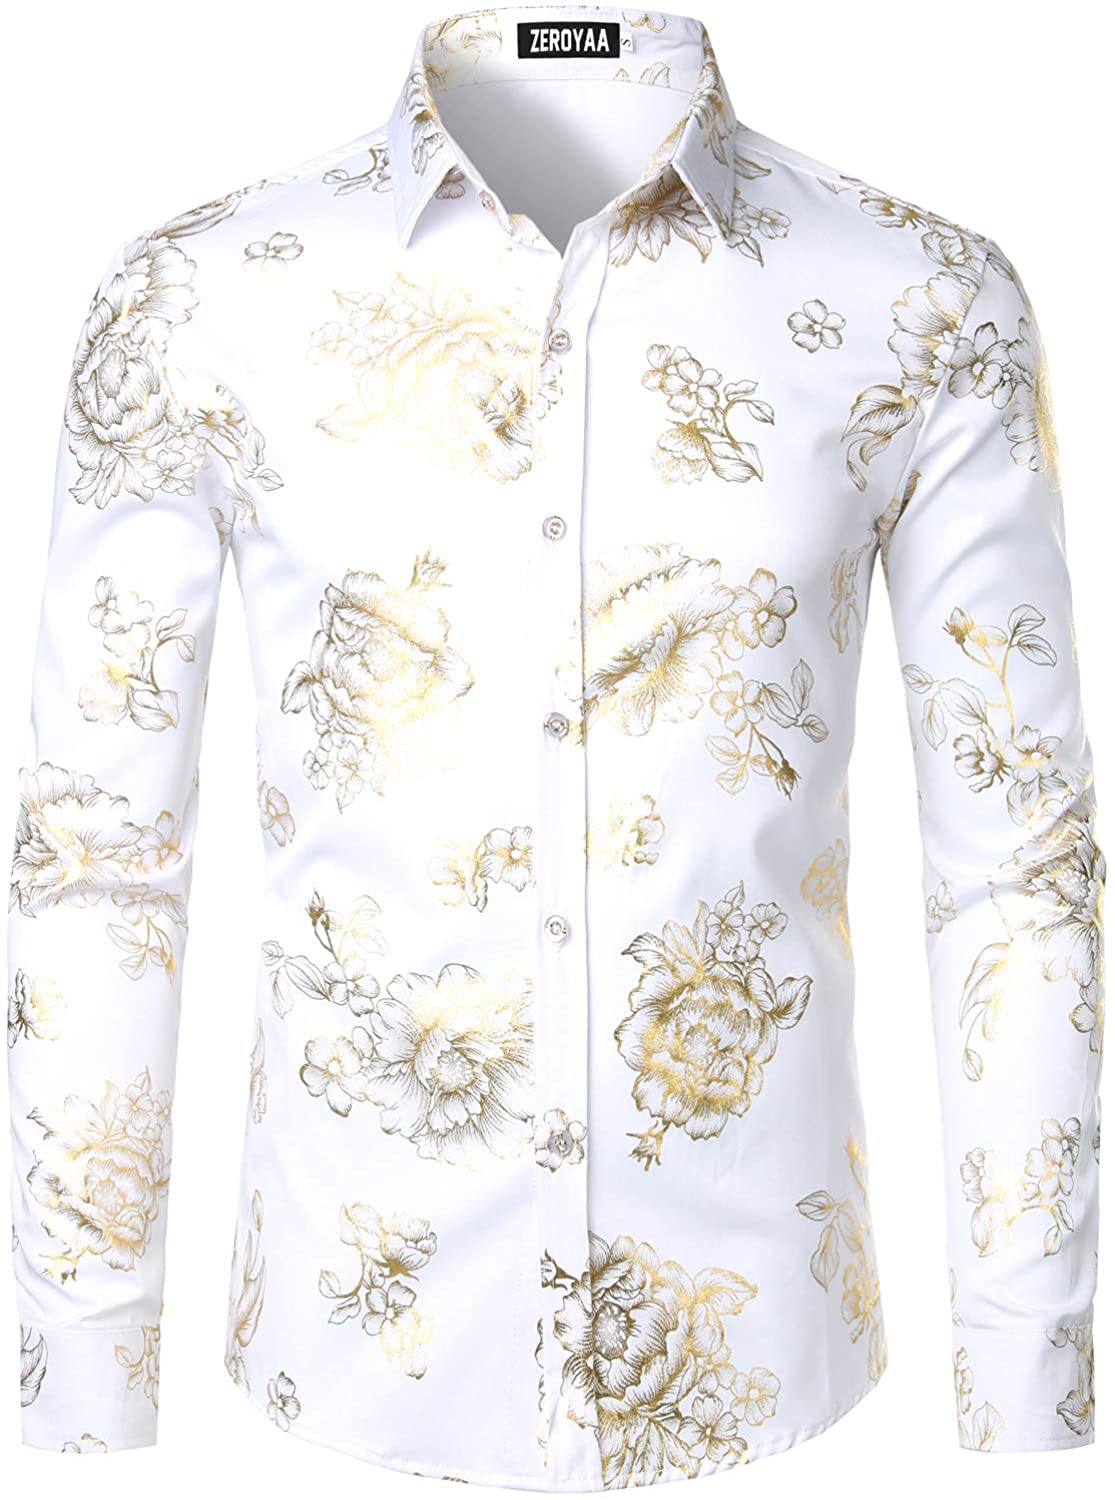 ZEROYAA Men's Luxury Shiny Gold Rose Printed Slim Fit Button up Dress Shirts for Party Prom